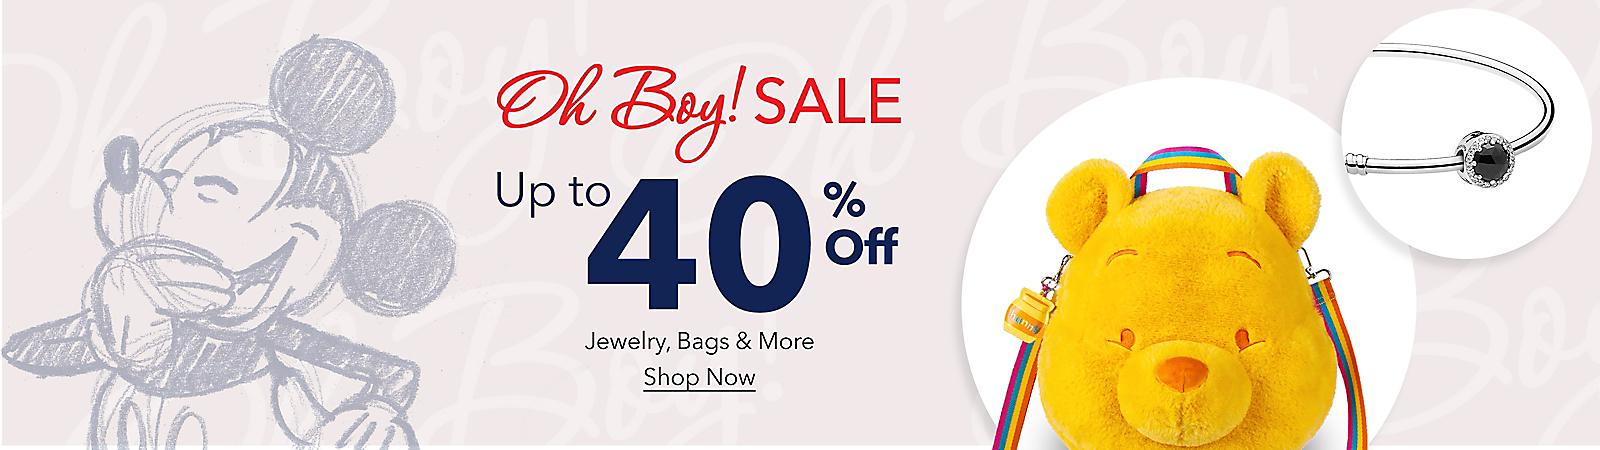 Oh Boy! Sale Up to 40% Off Jewelry, Bags & More